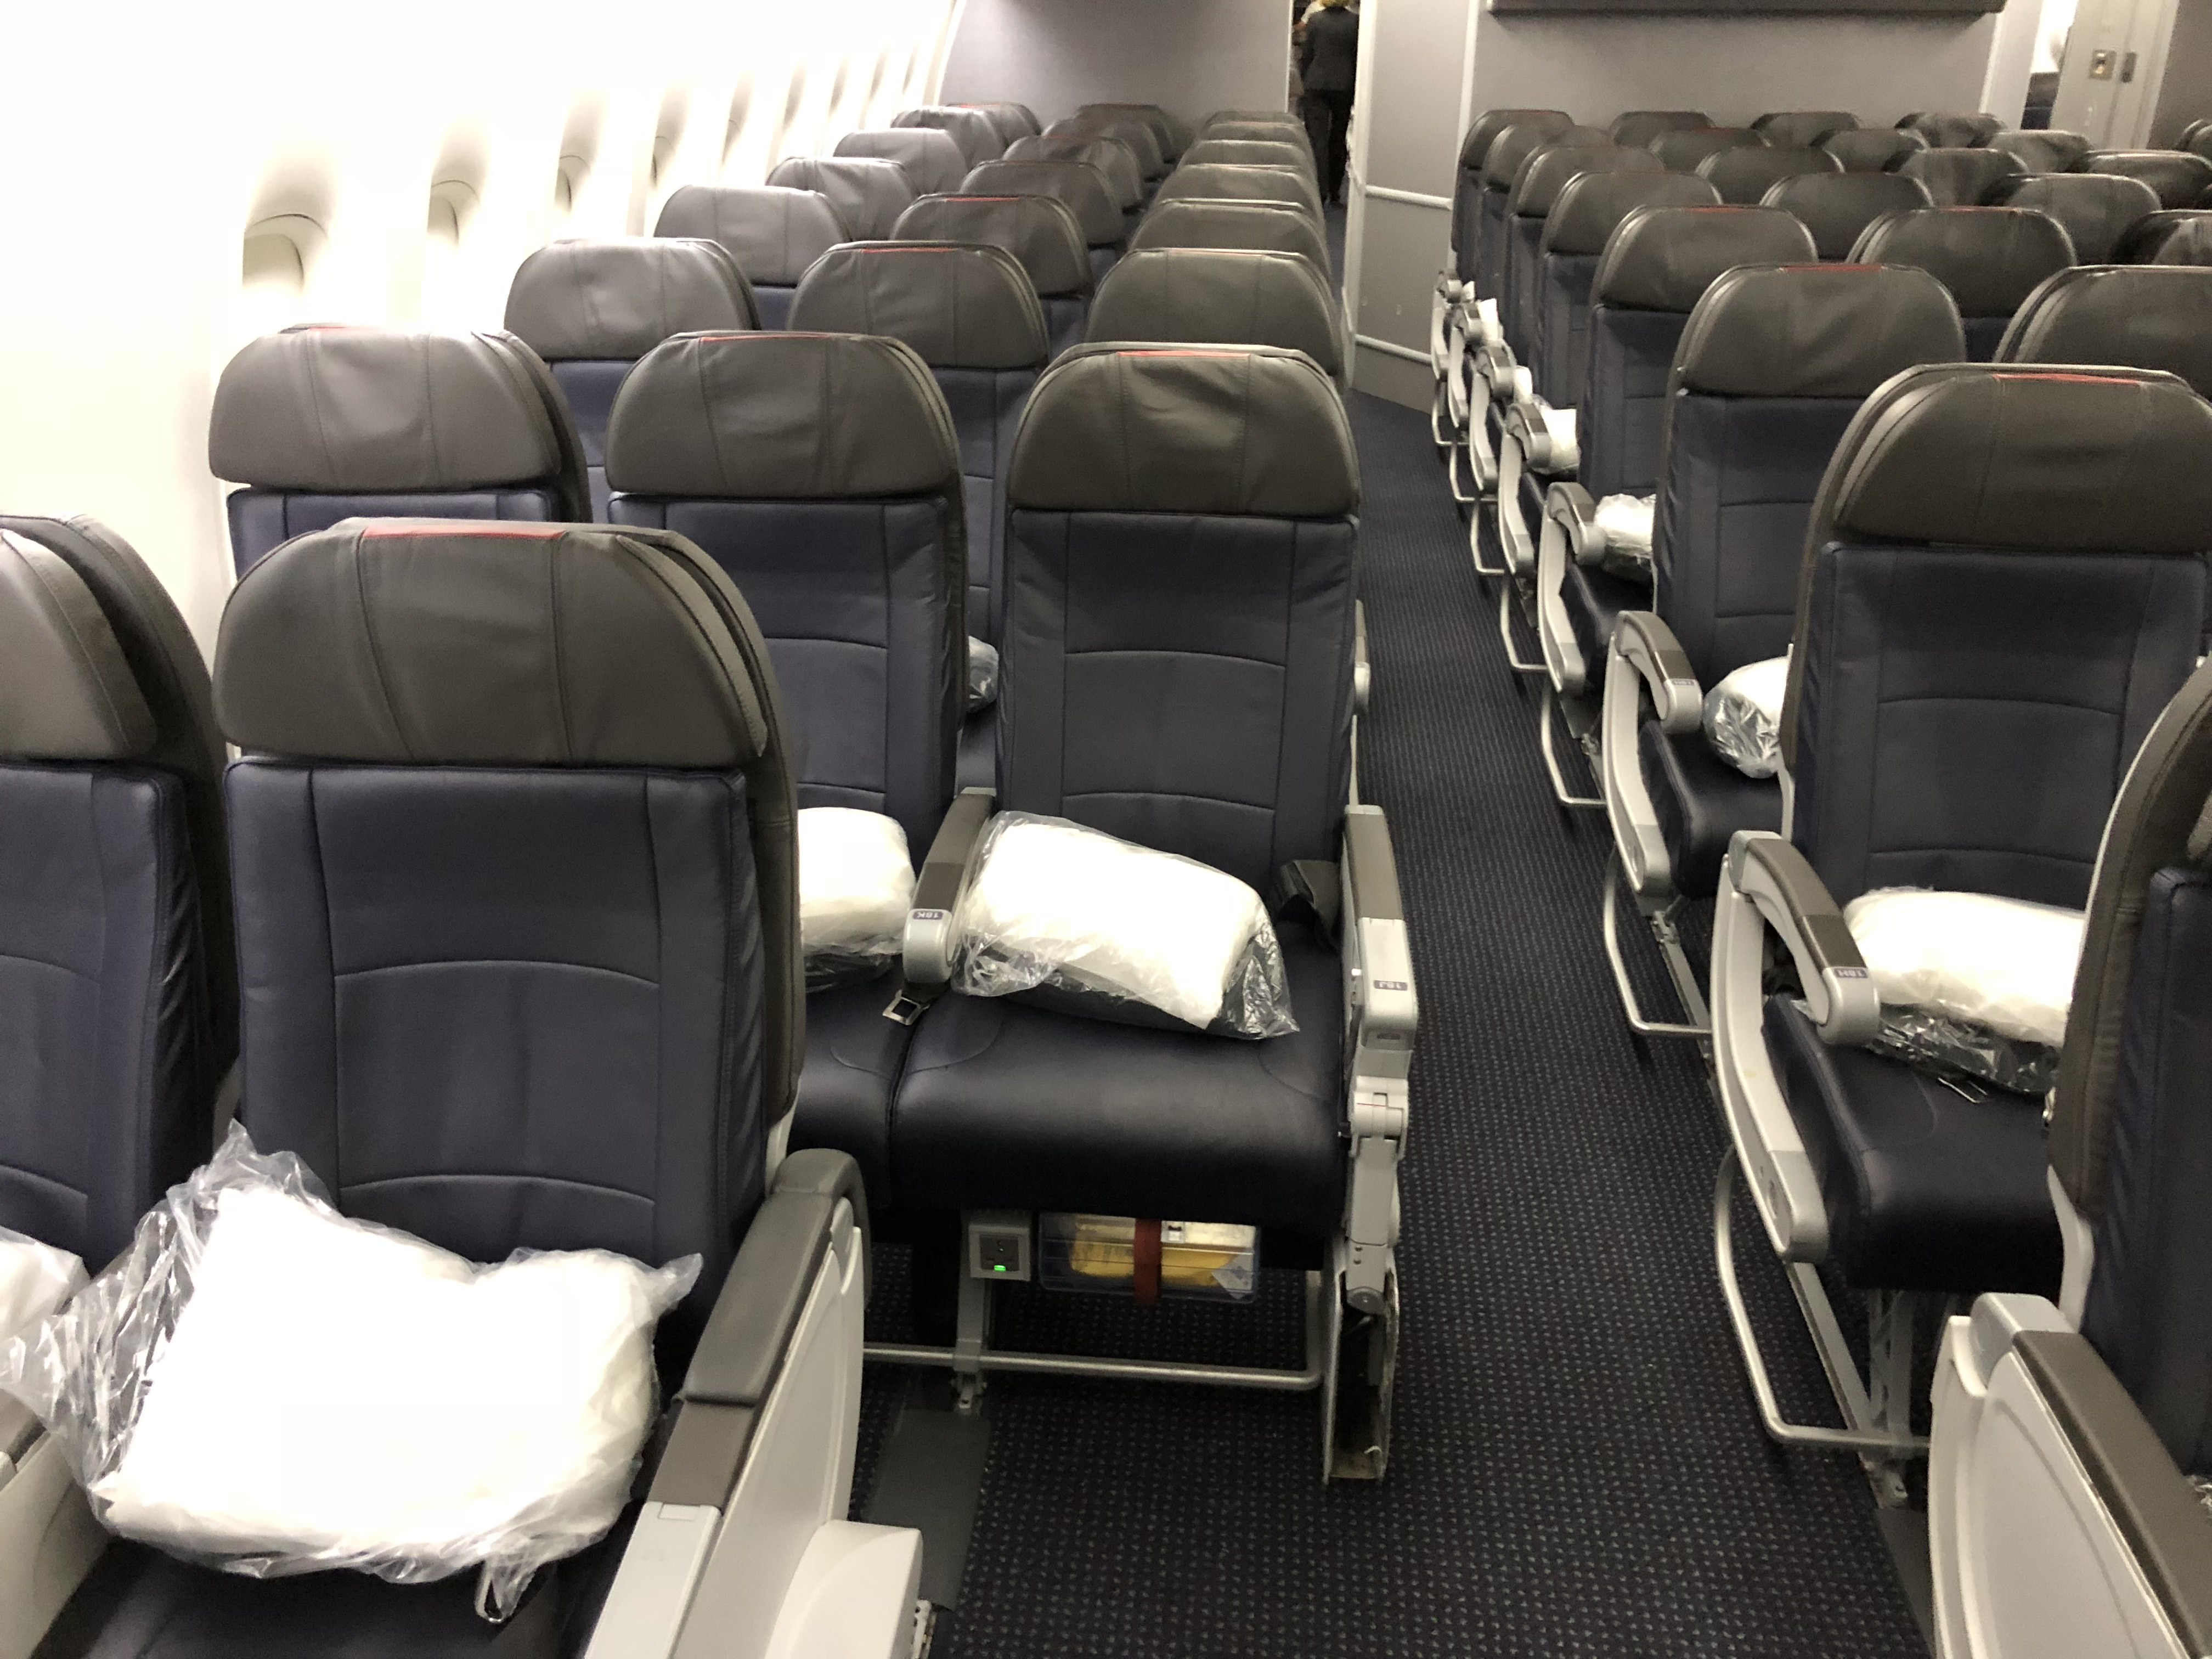 American Airlines Economy Cabin 777